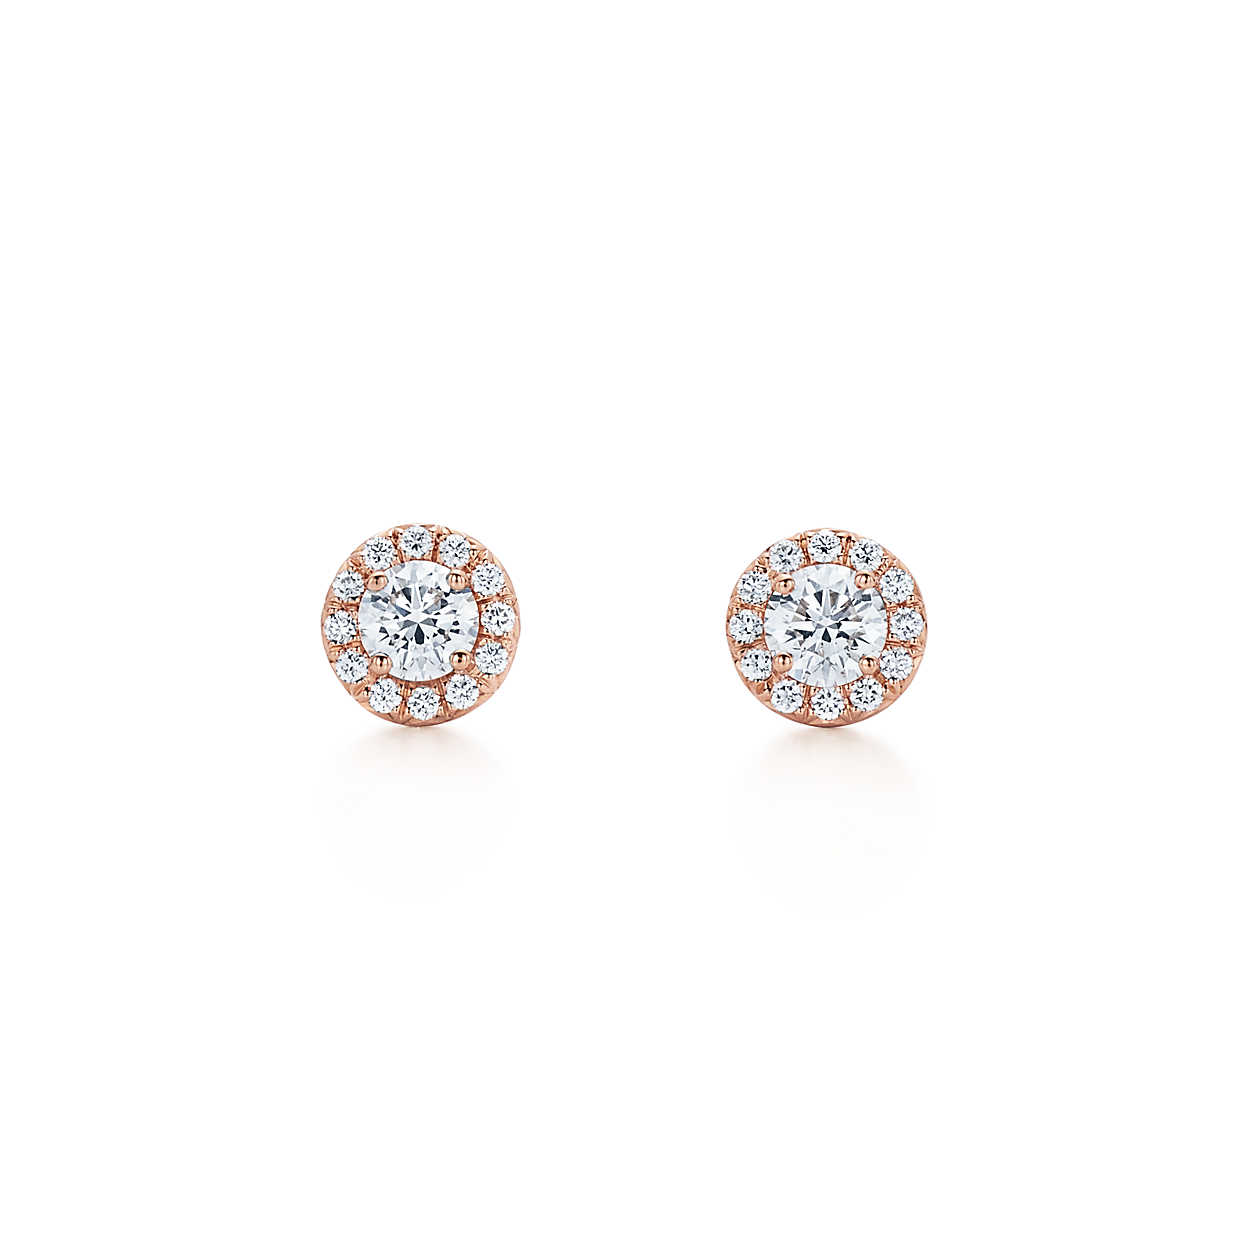 "Wedding Earrings for Every Bride, Tiffany and Co. ""Soleste"" Round Diamond Earrings"